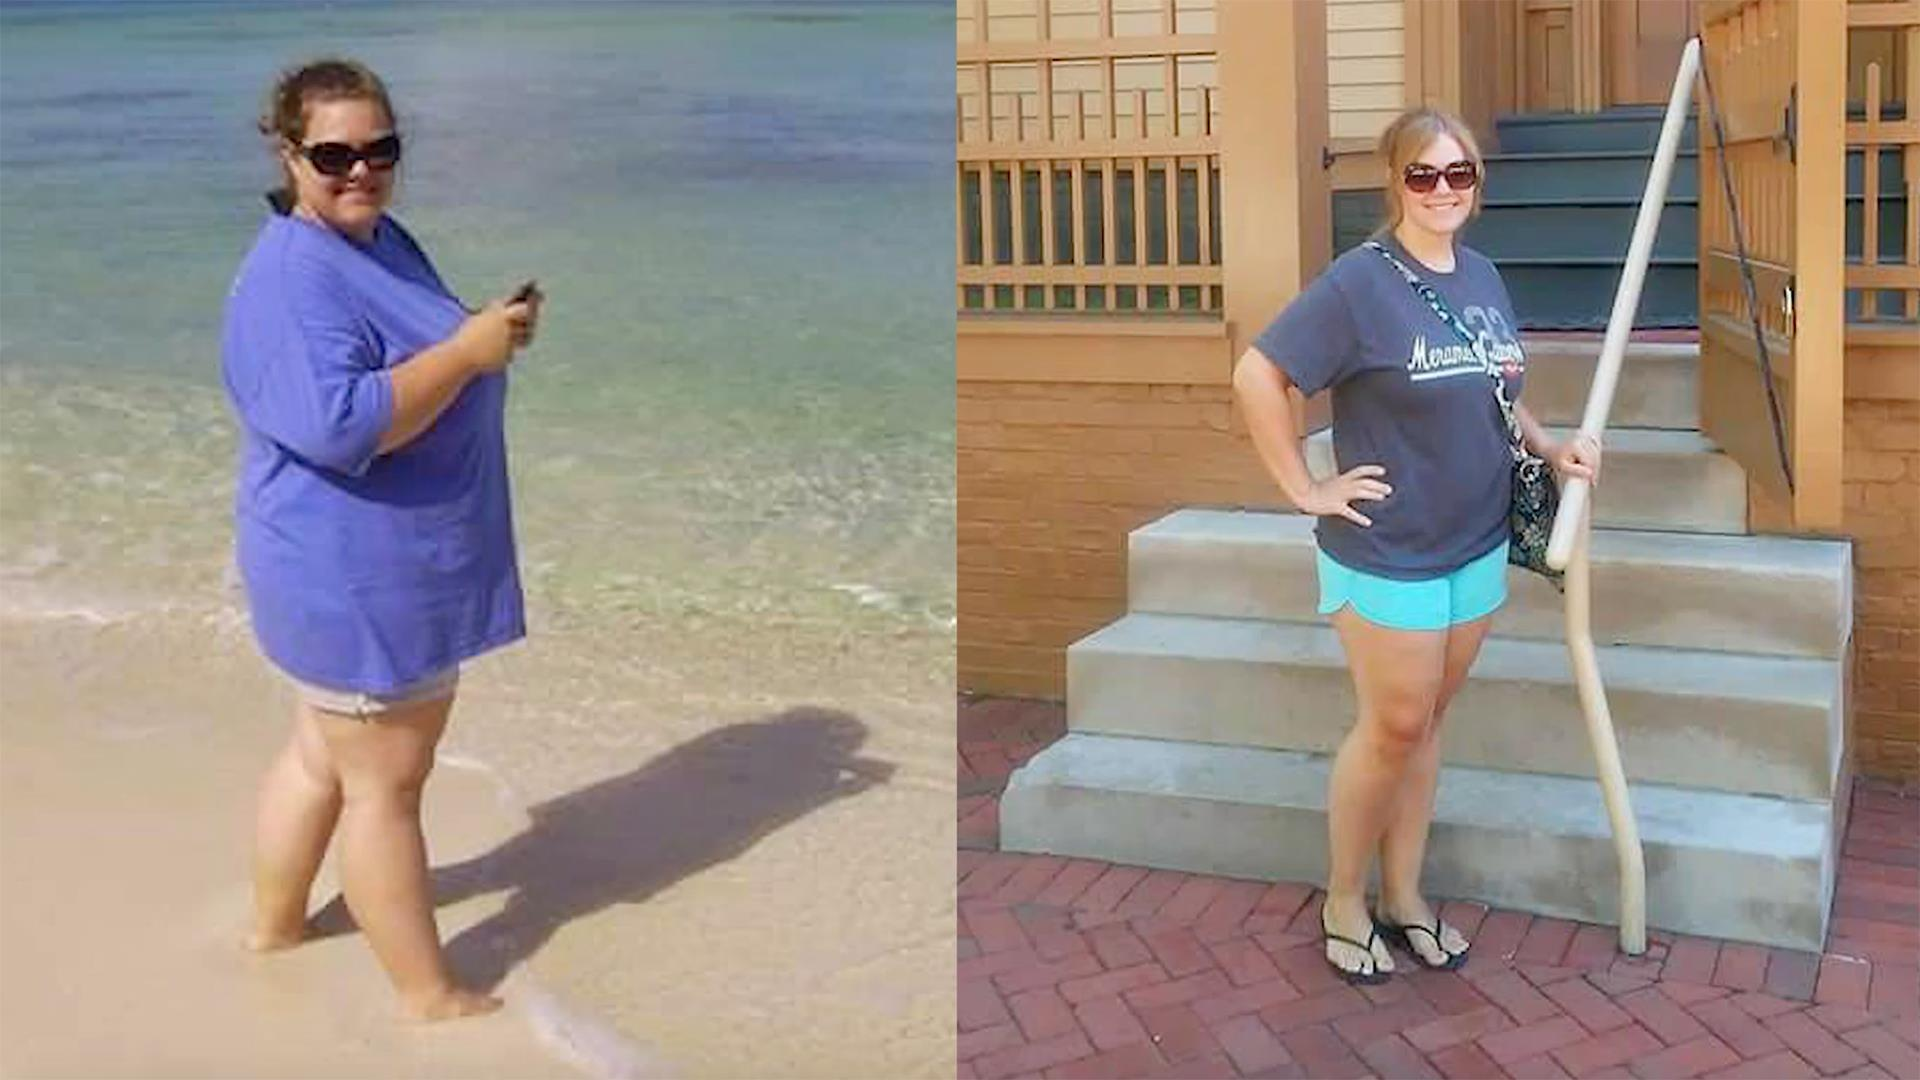 Following 3 steps helped this woman lose 100 pounds